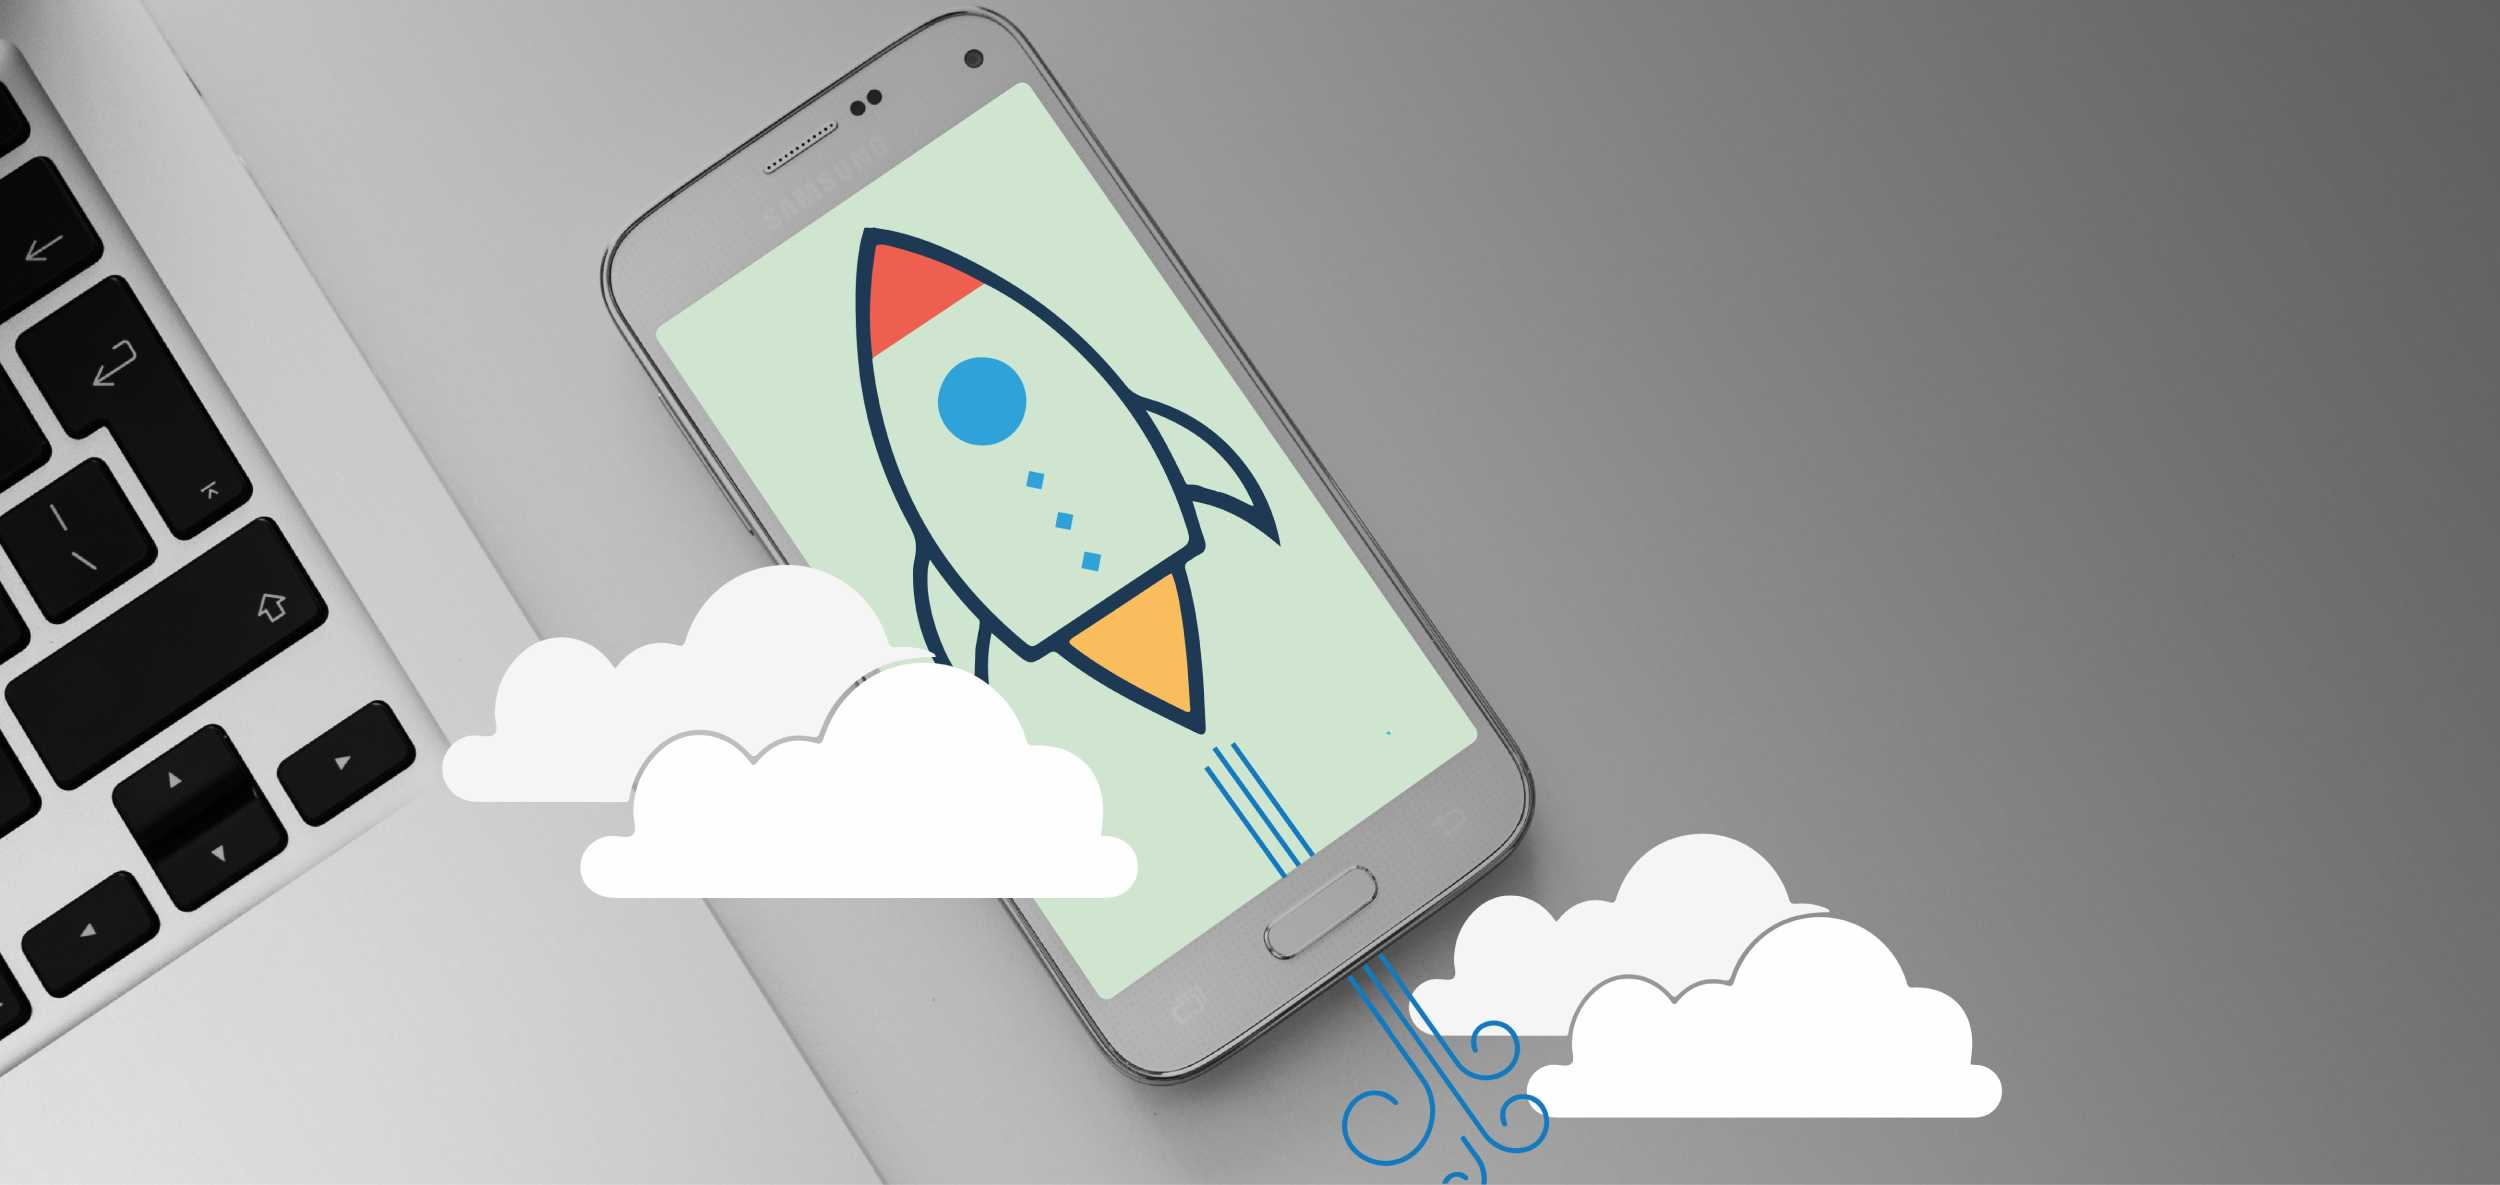 5 Reasons Why Your Startup Needs A Mobile Application